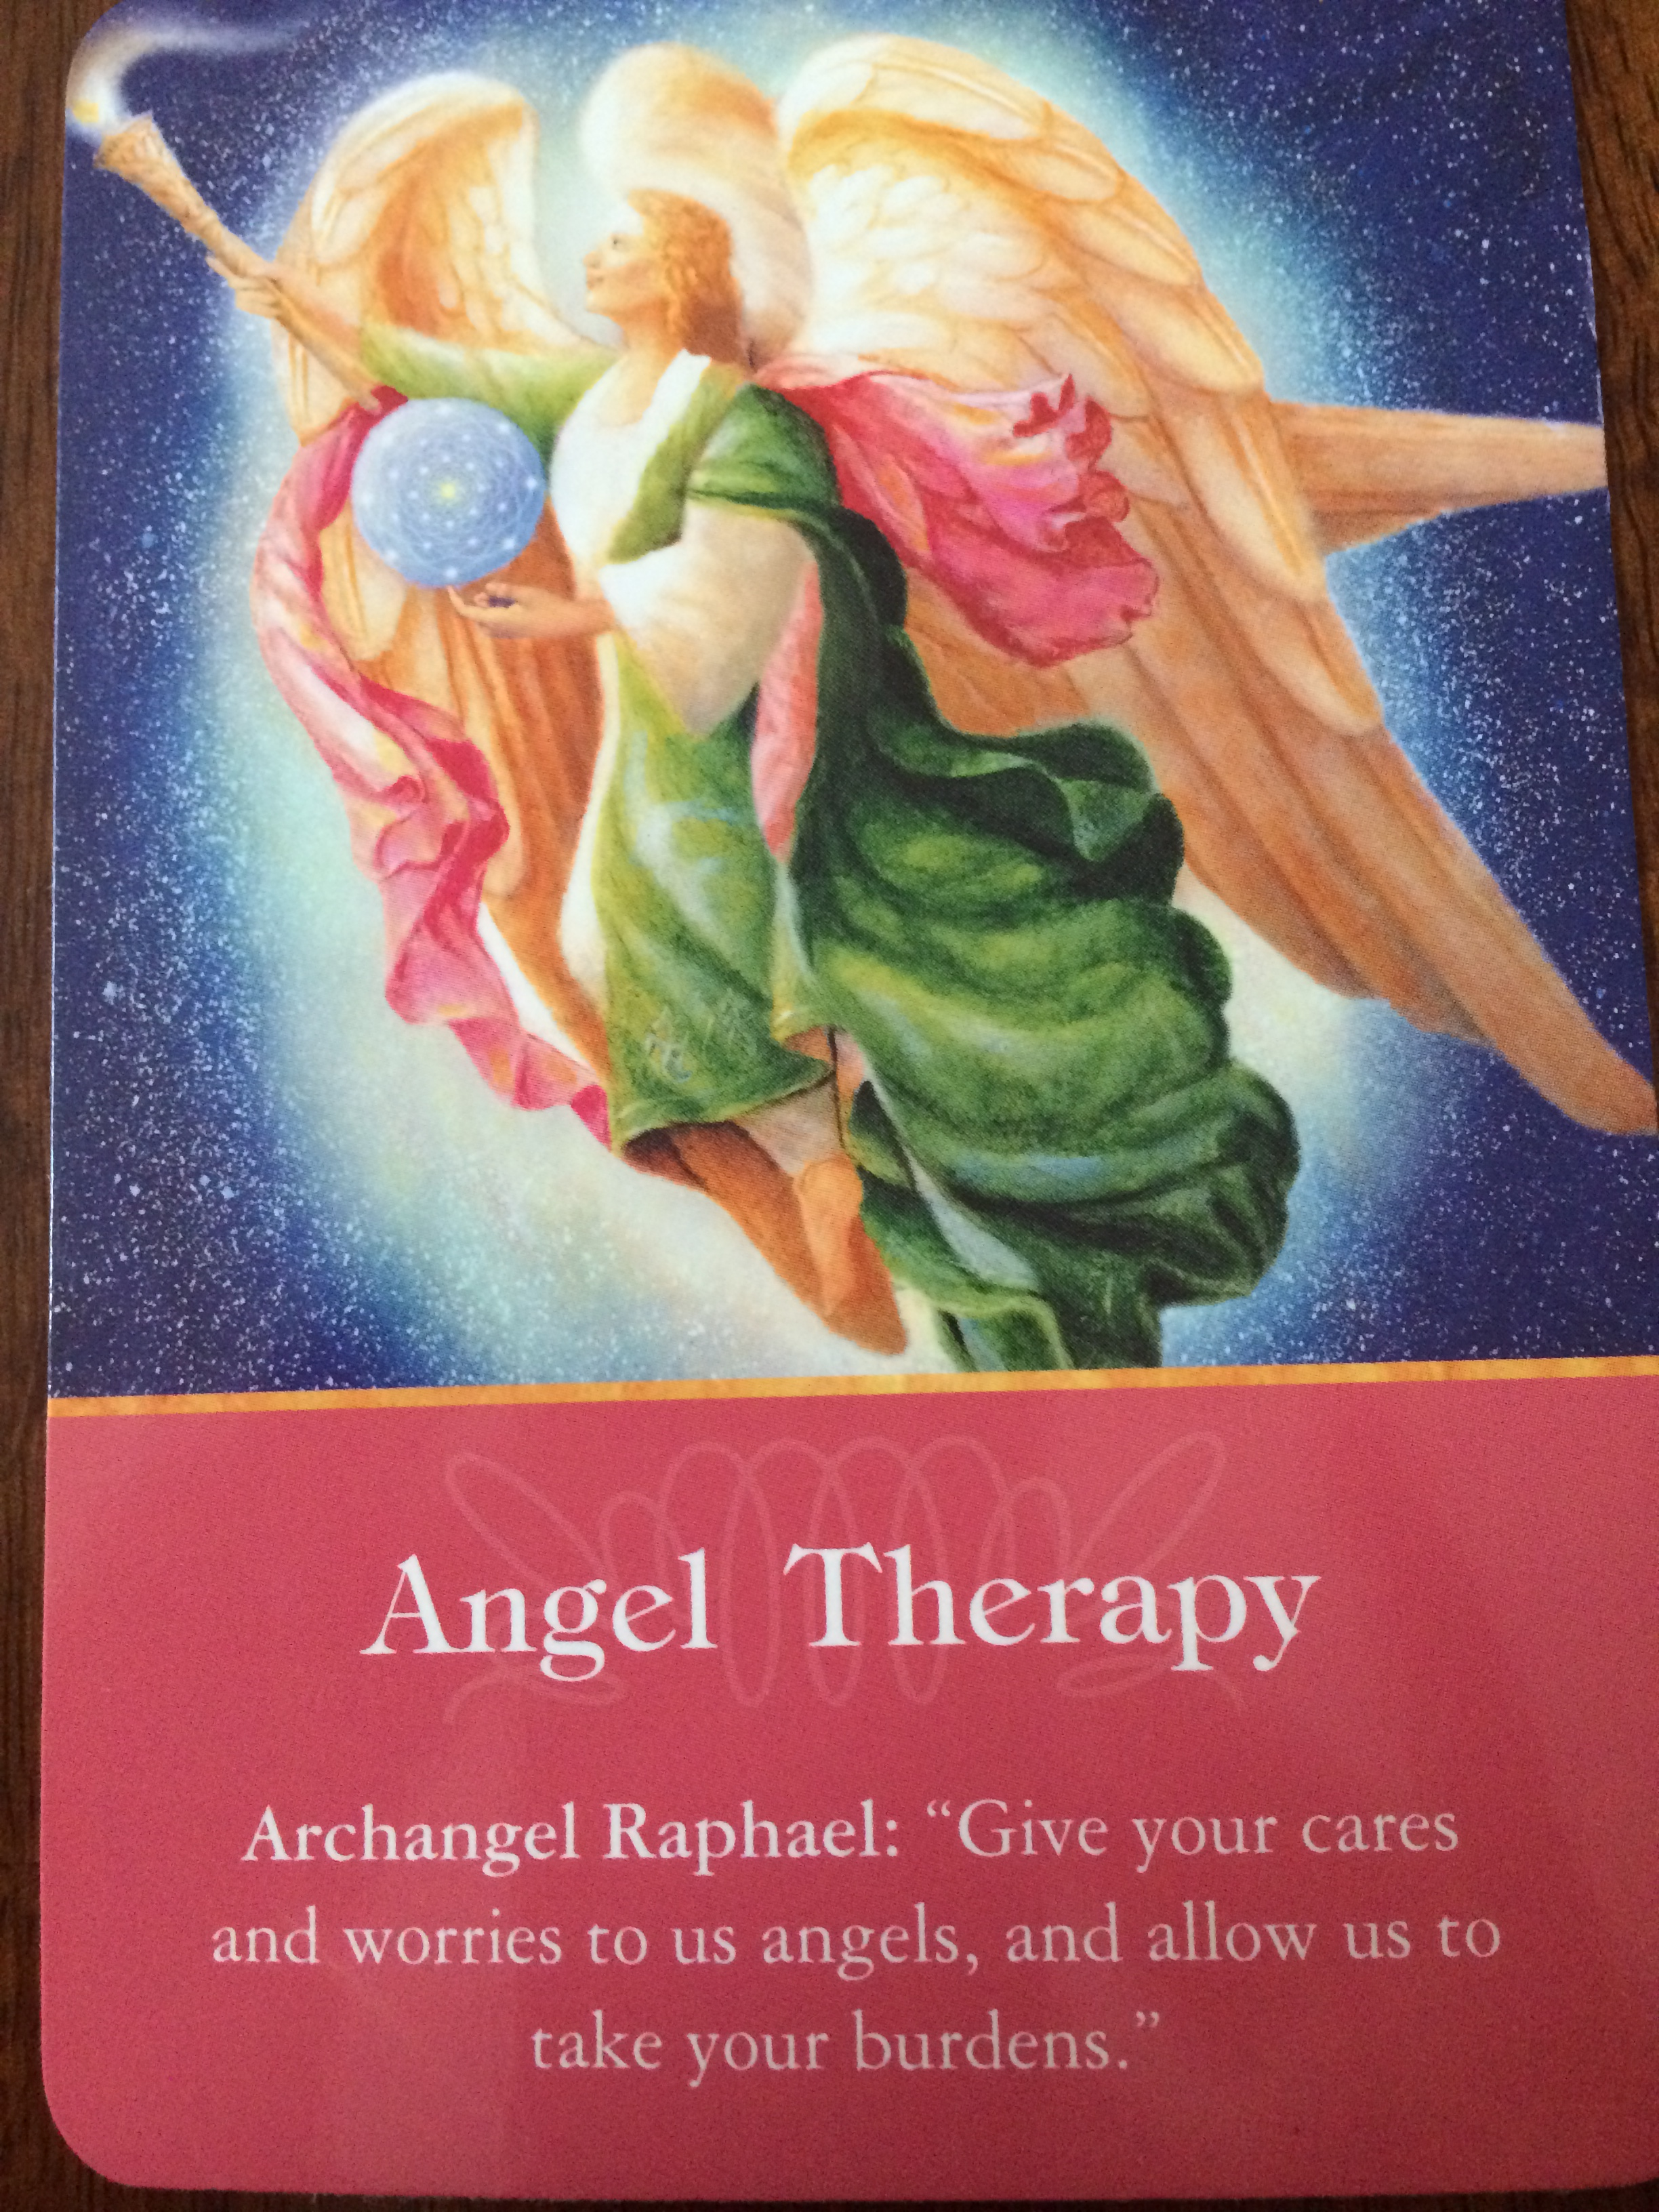 Archangel Oracle Divine Guidance: Archangel Oracle Cards Angel Therapy